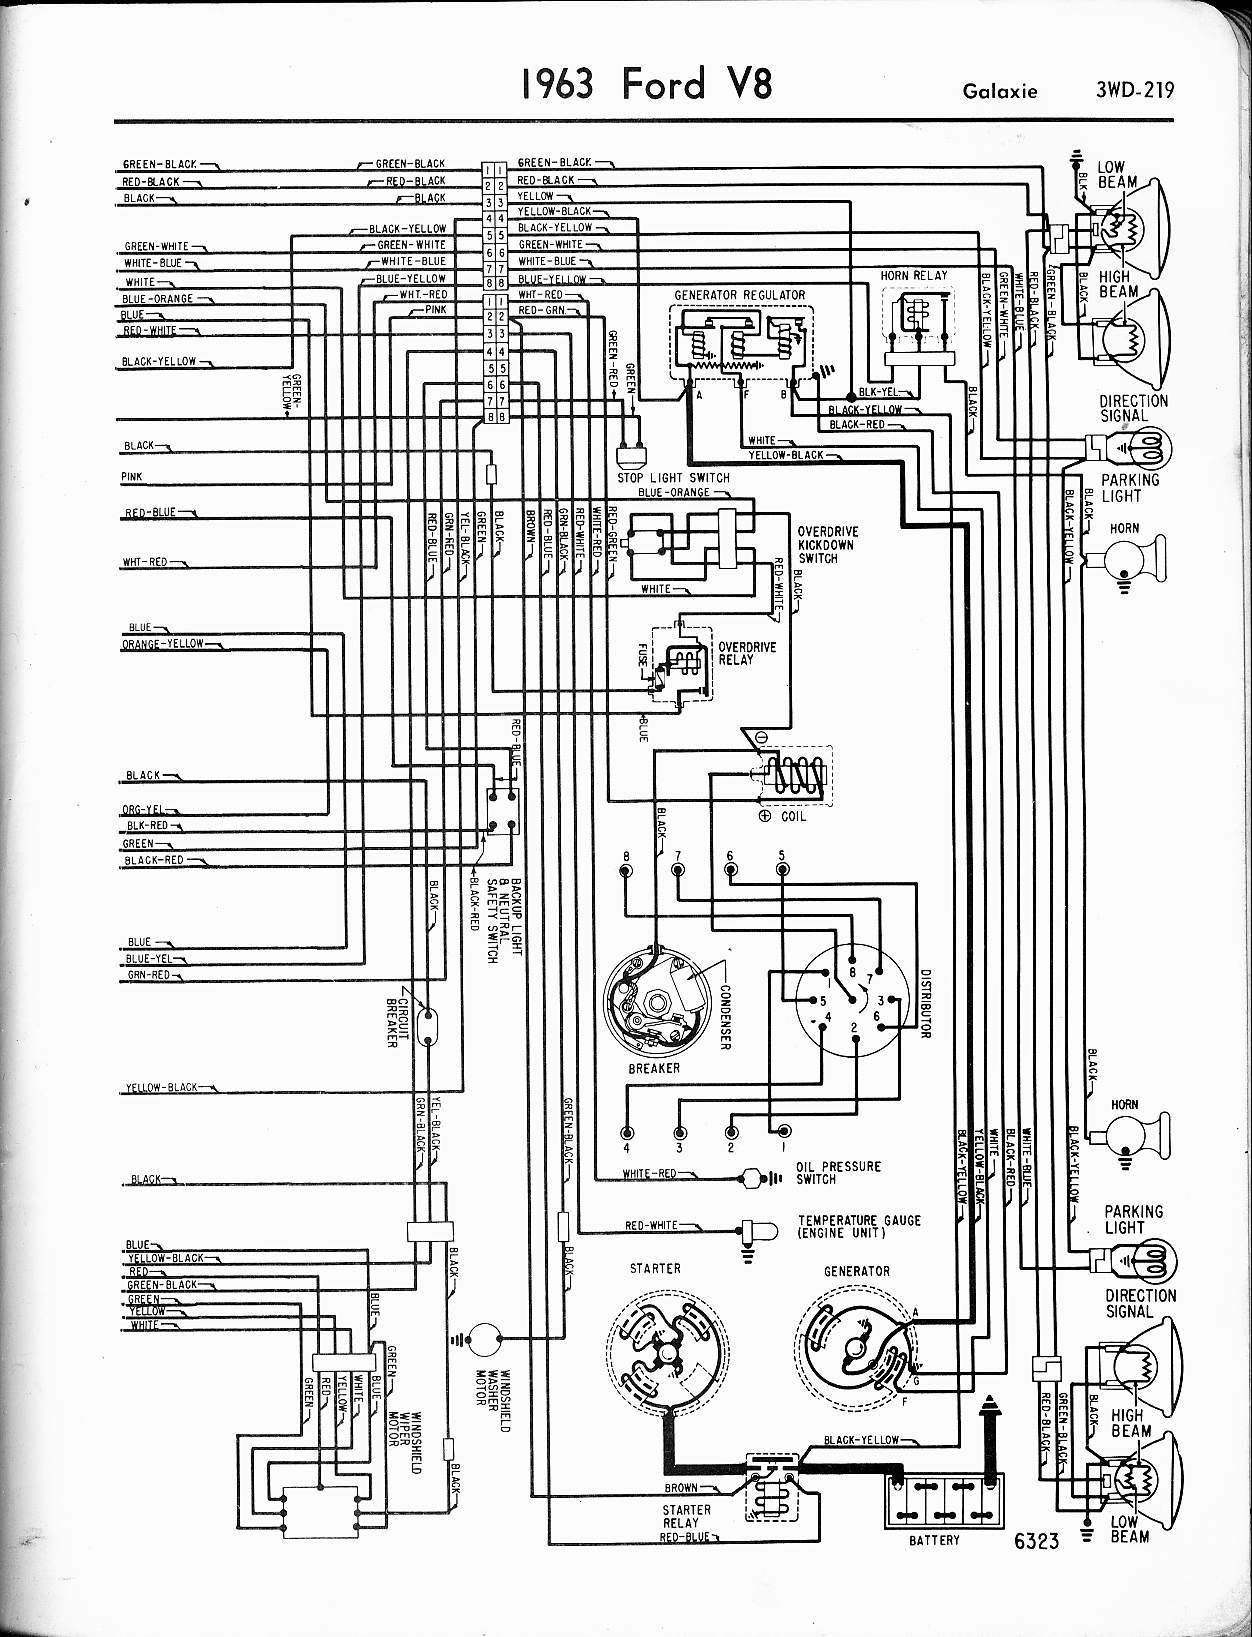 Diagram 1962 Ford Galaxie 500 Wiring Diagram Full Version Hd Quality Wiring Diagram Sato Yti Fr